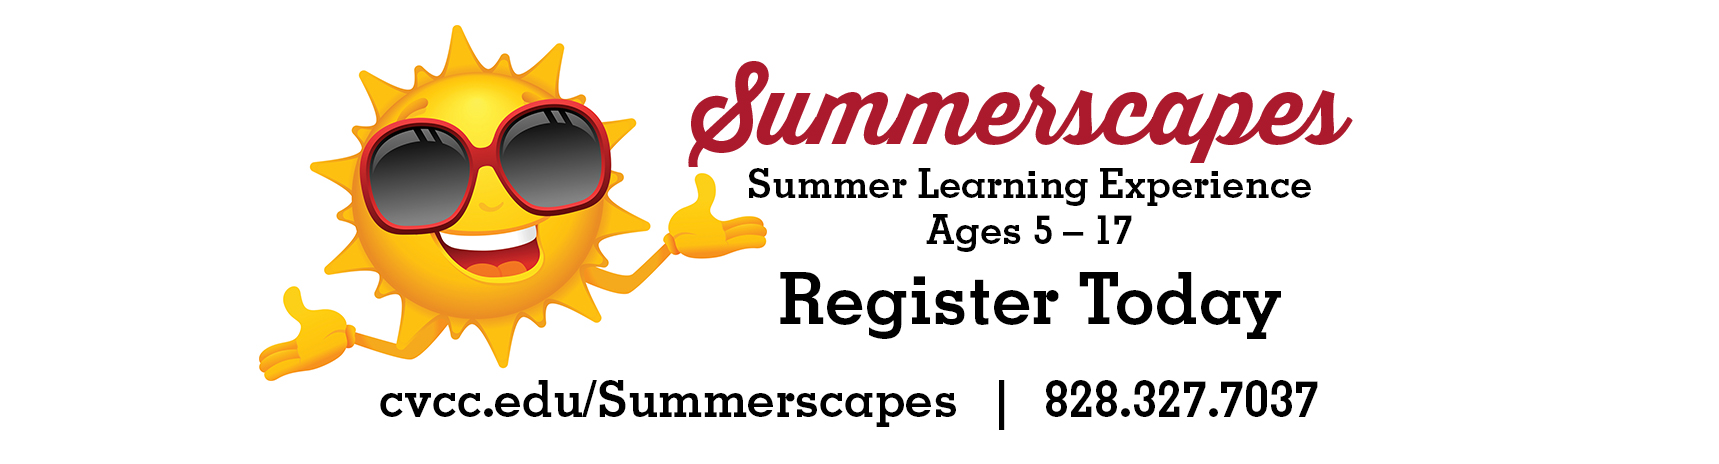 Summerscapes 2017 for ages 5-17 - Register Today